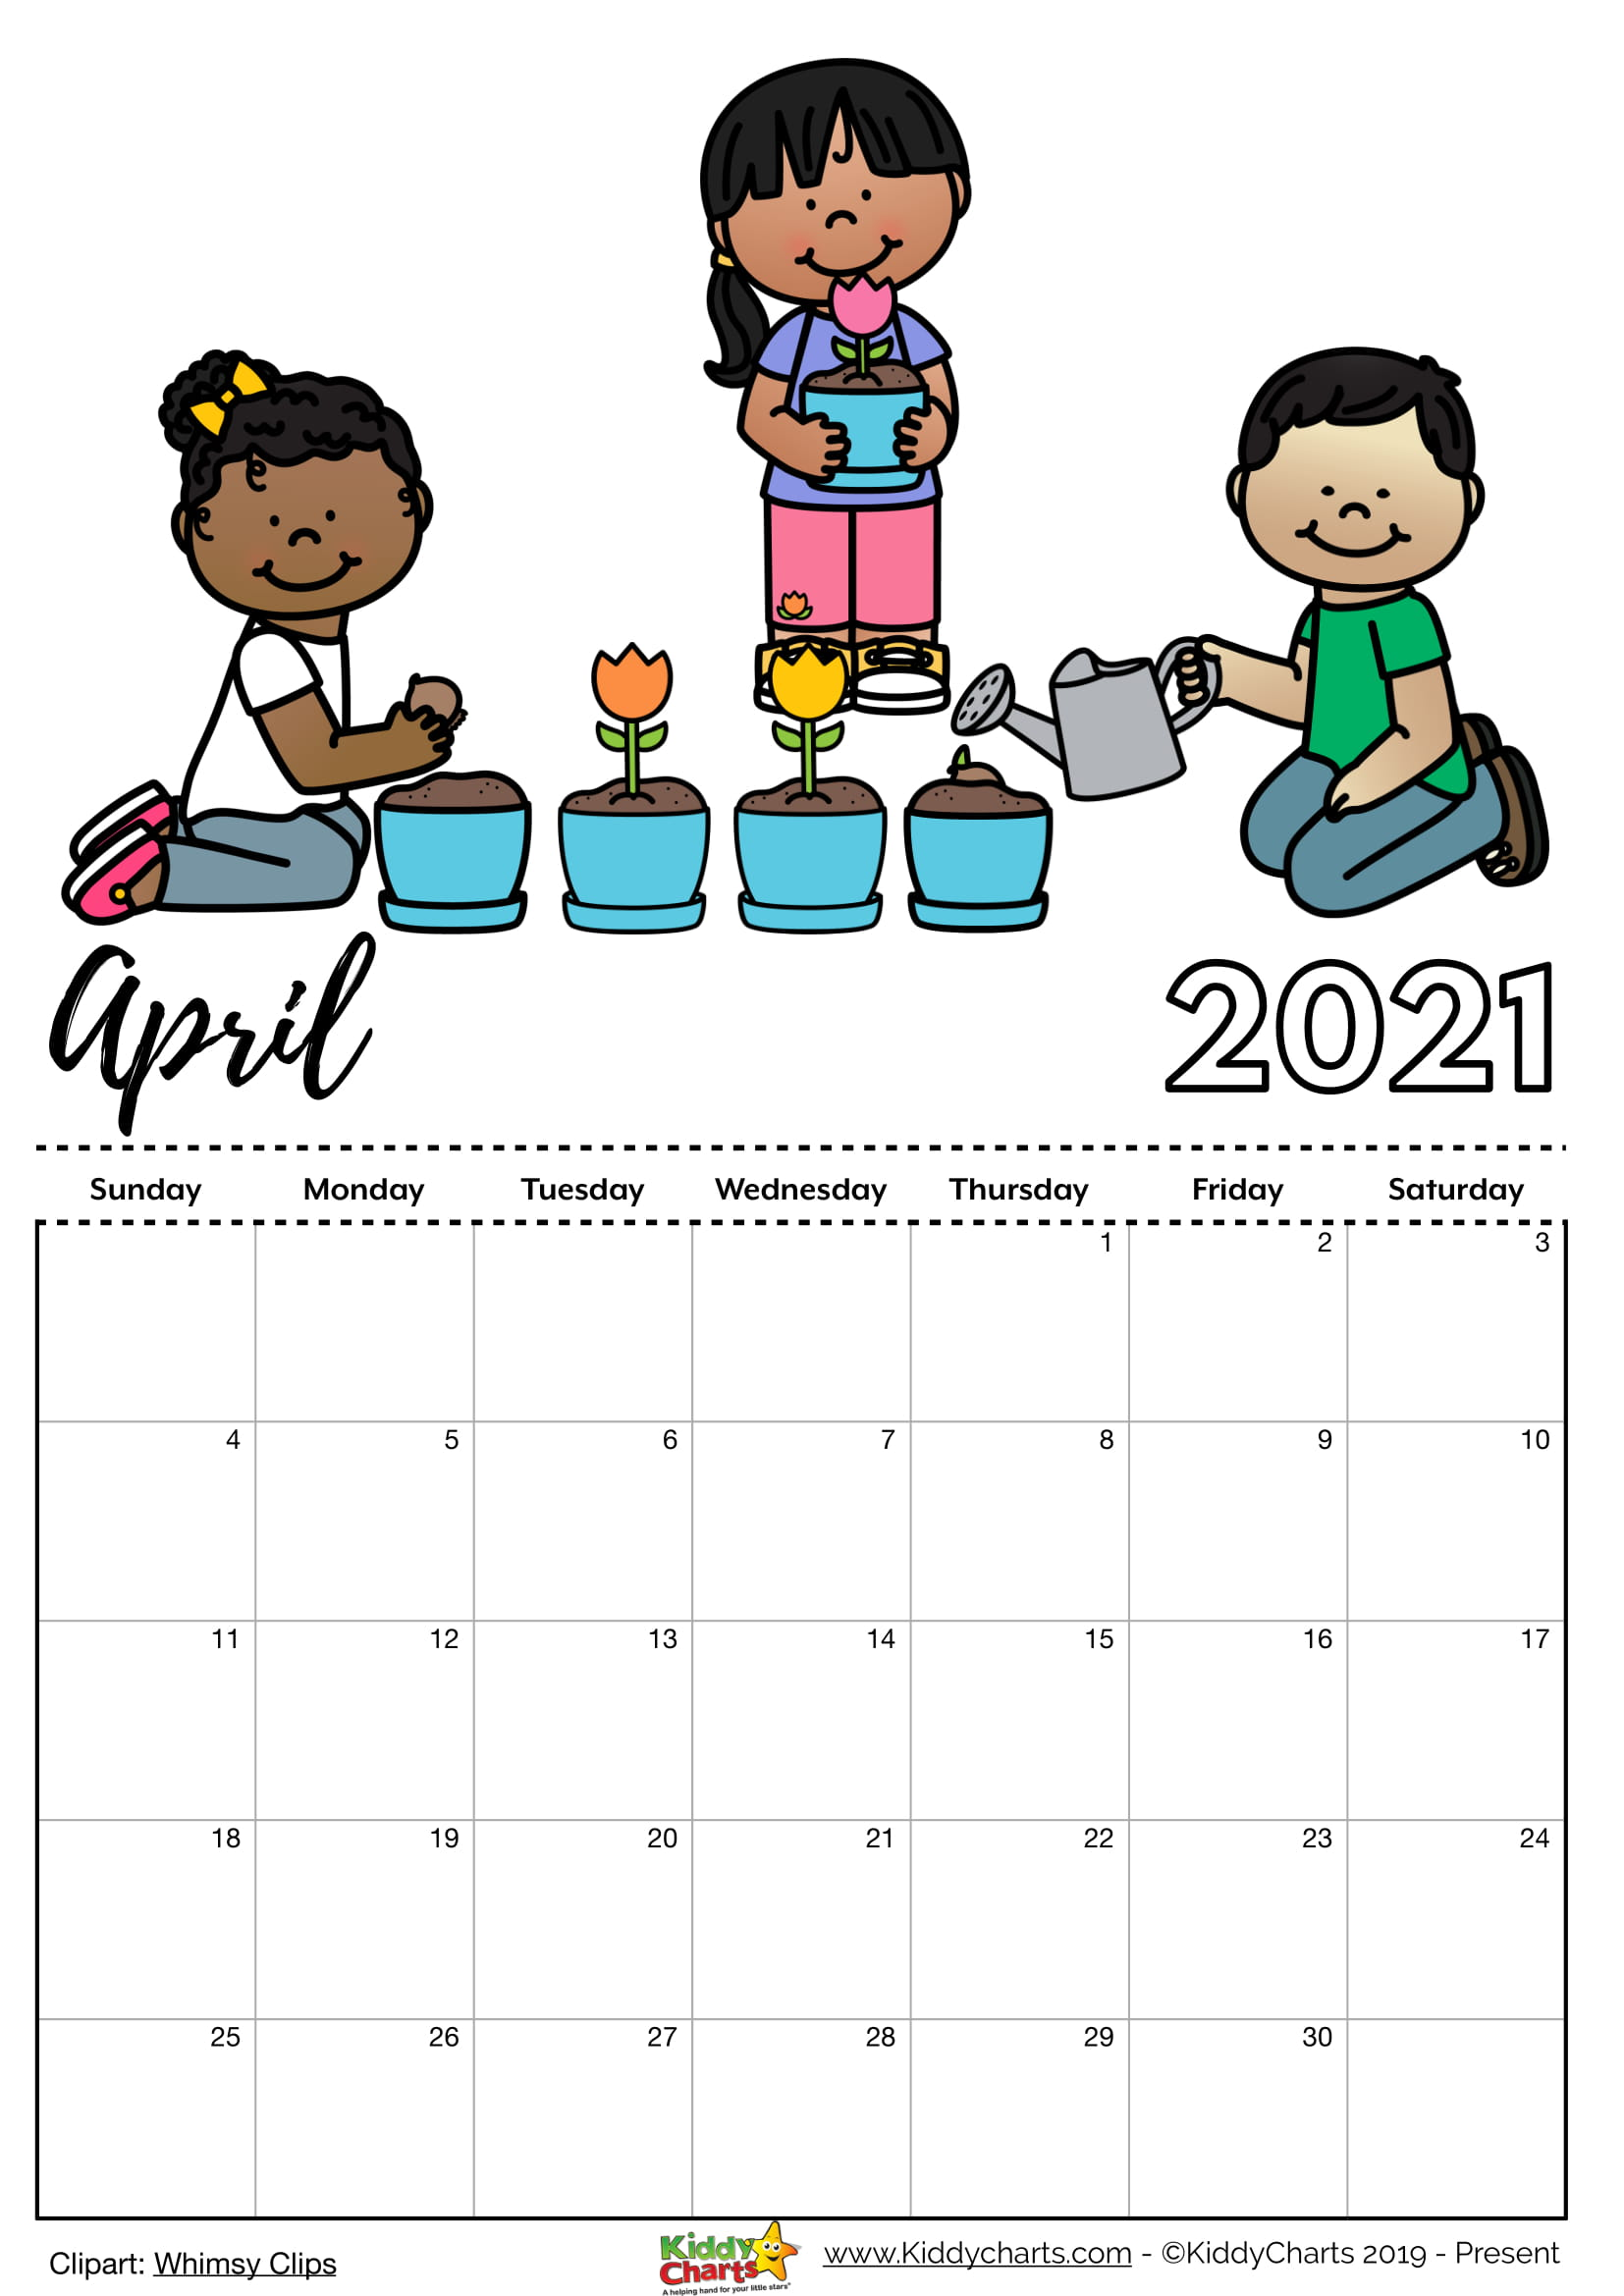 Printable Childrens Calendar 2021 Free printable 2021 calendar: includes editable version